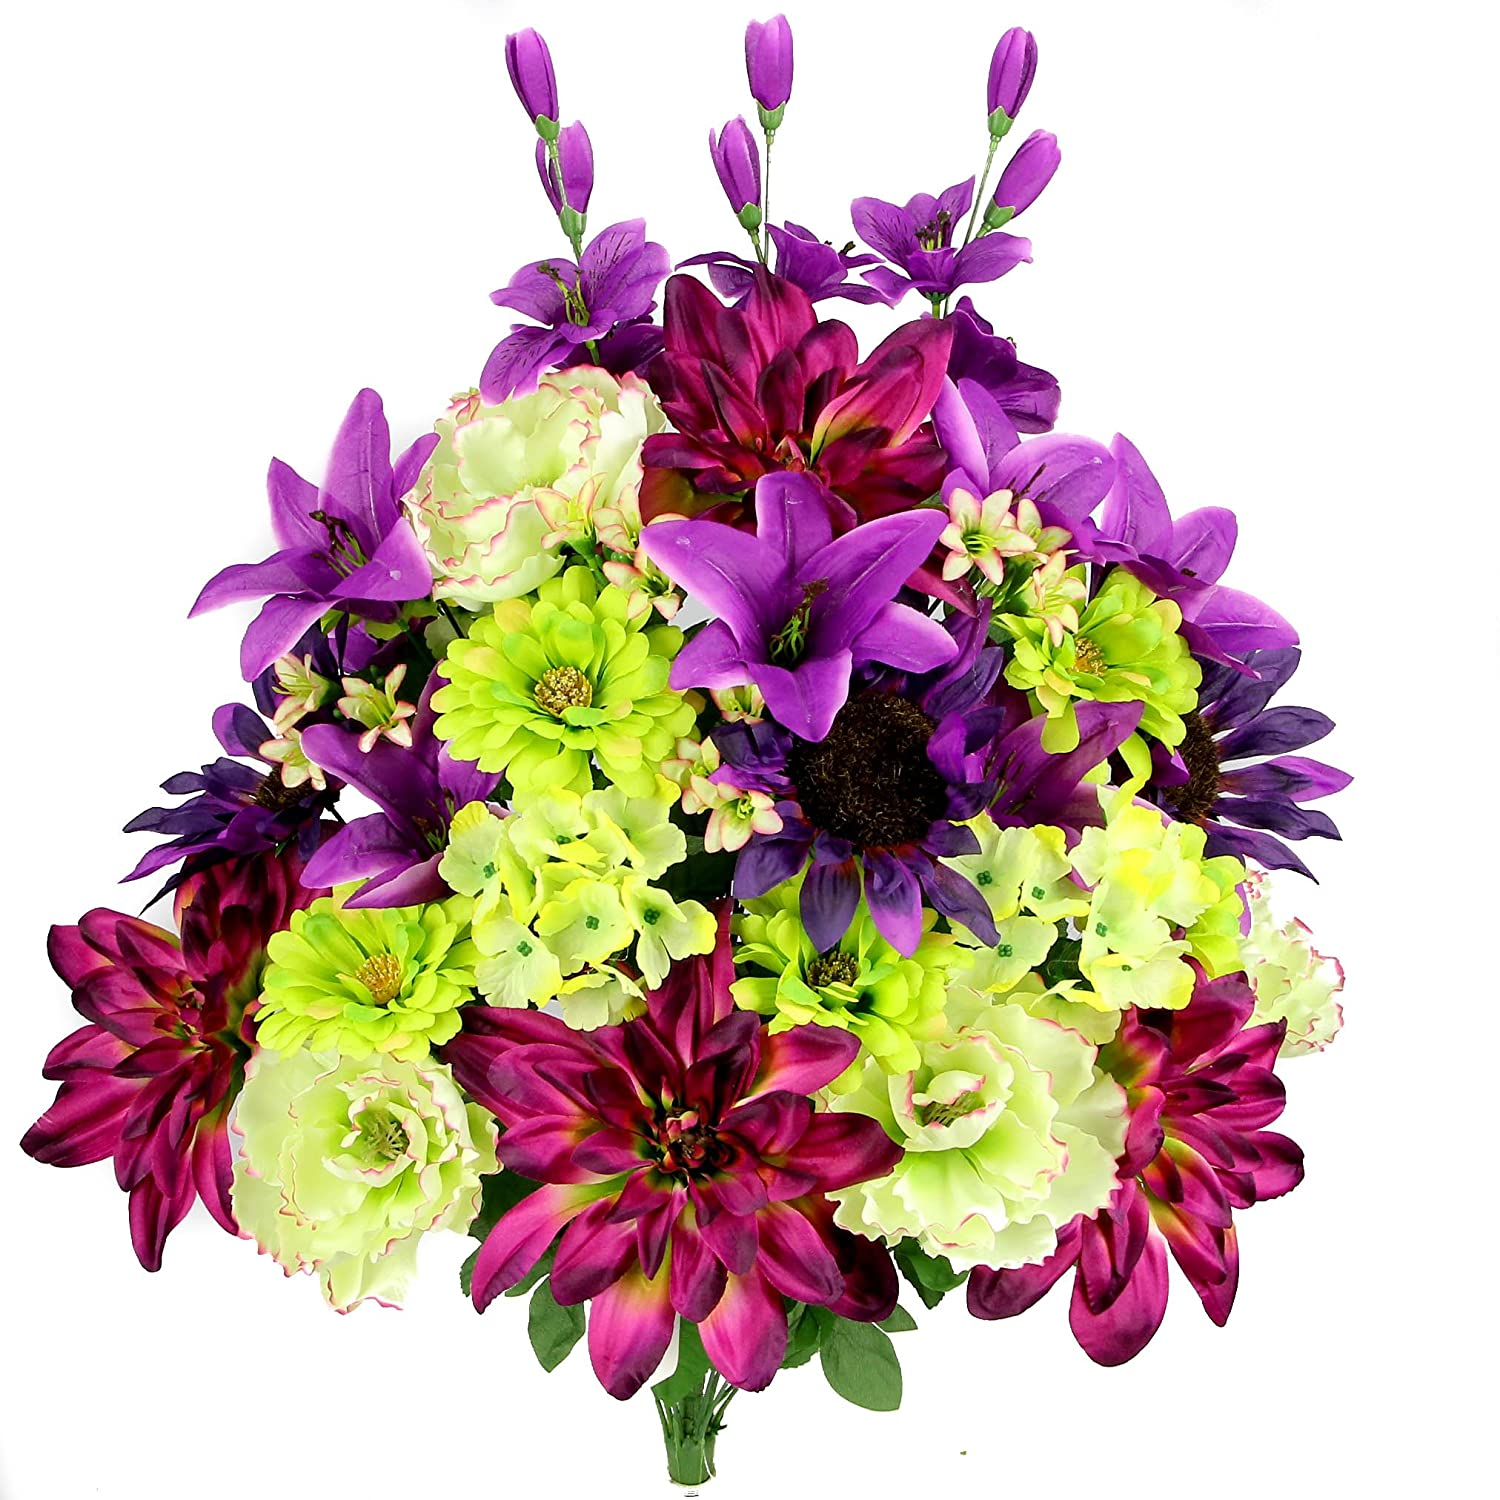 Amazon admired by nature 36 stems artificial new dahlia amazon admired by nature 36 stems artificial new dahlia sunflower peony hydrangea mixed flower bush with greenery for mothers day home wedding izmirmasajfo